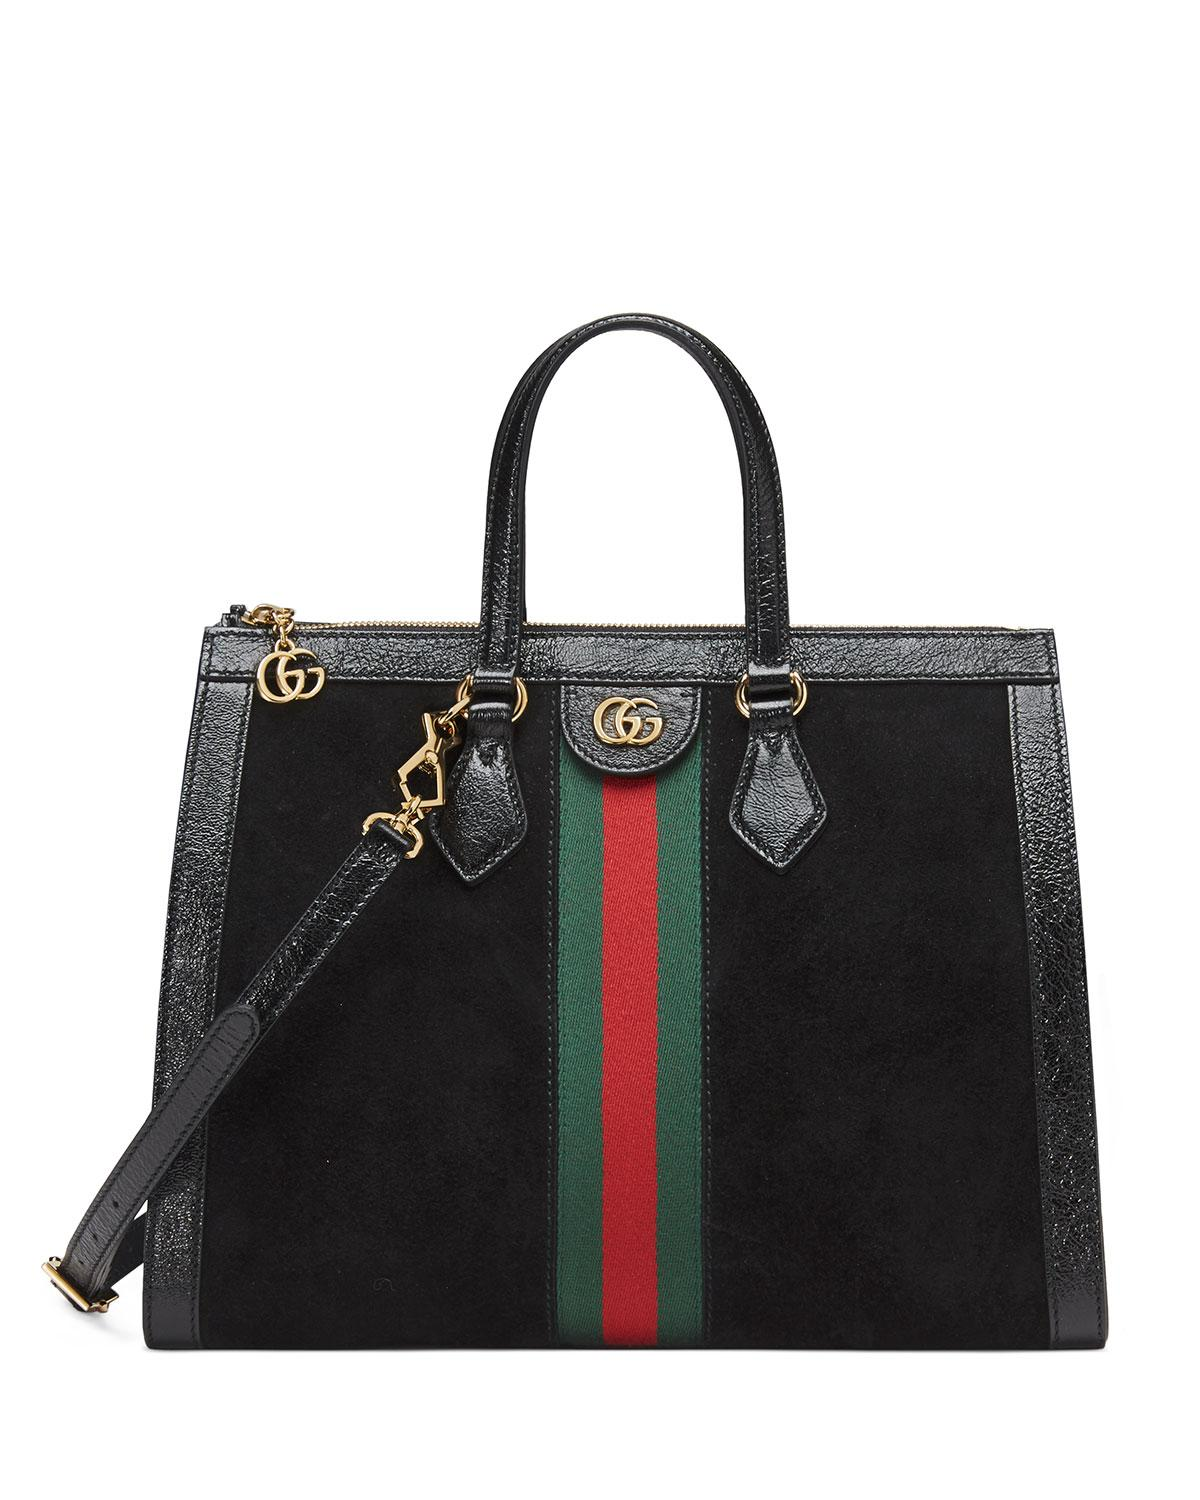 Lyst - Gucci Ophidia Web Suede Top-handle Tote Bag in Black f7aa2bdb39